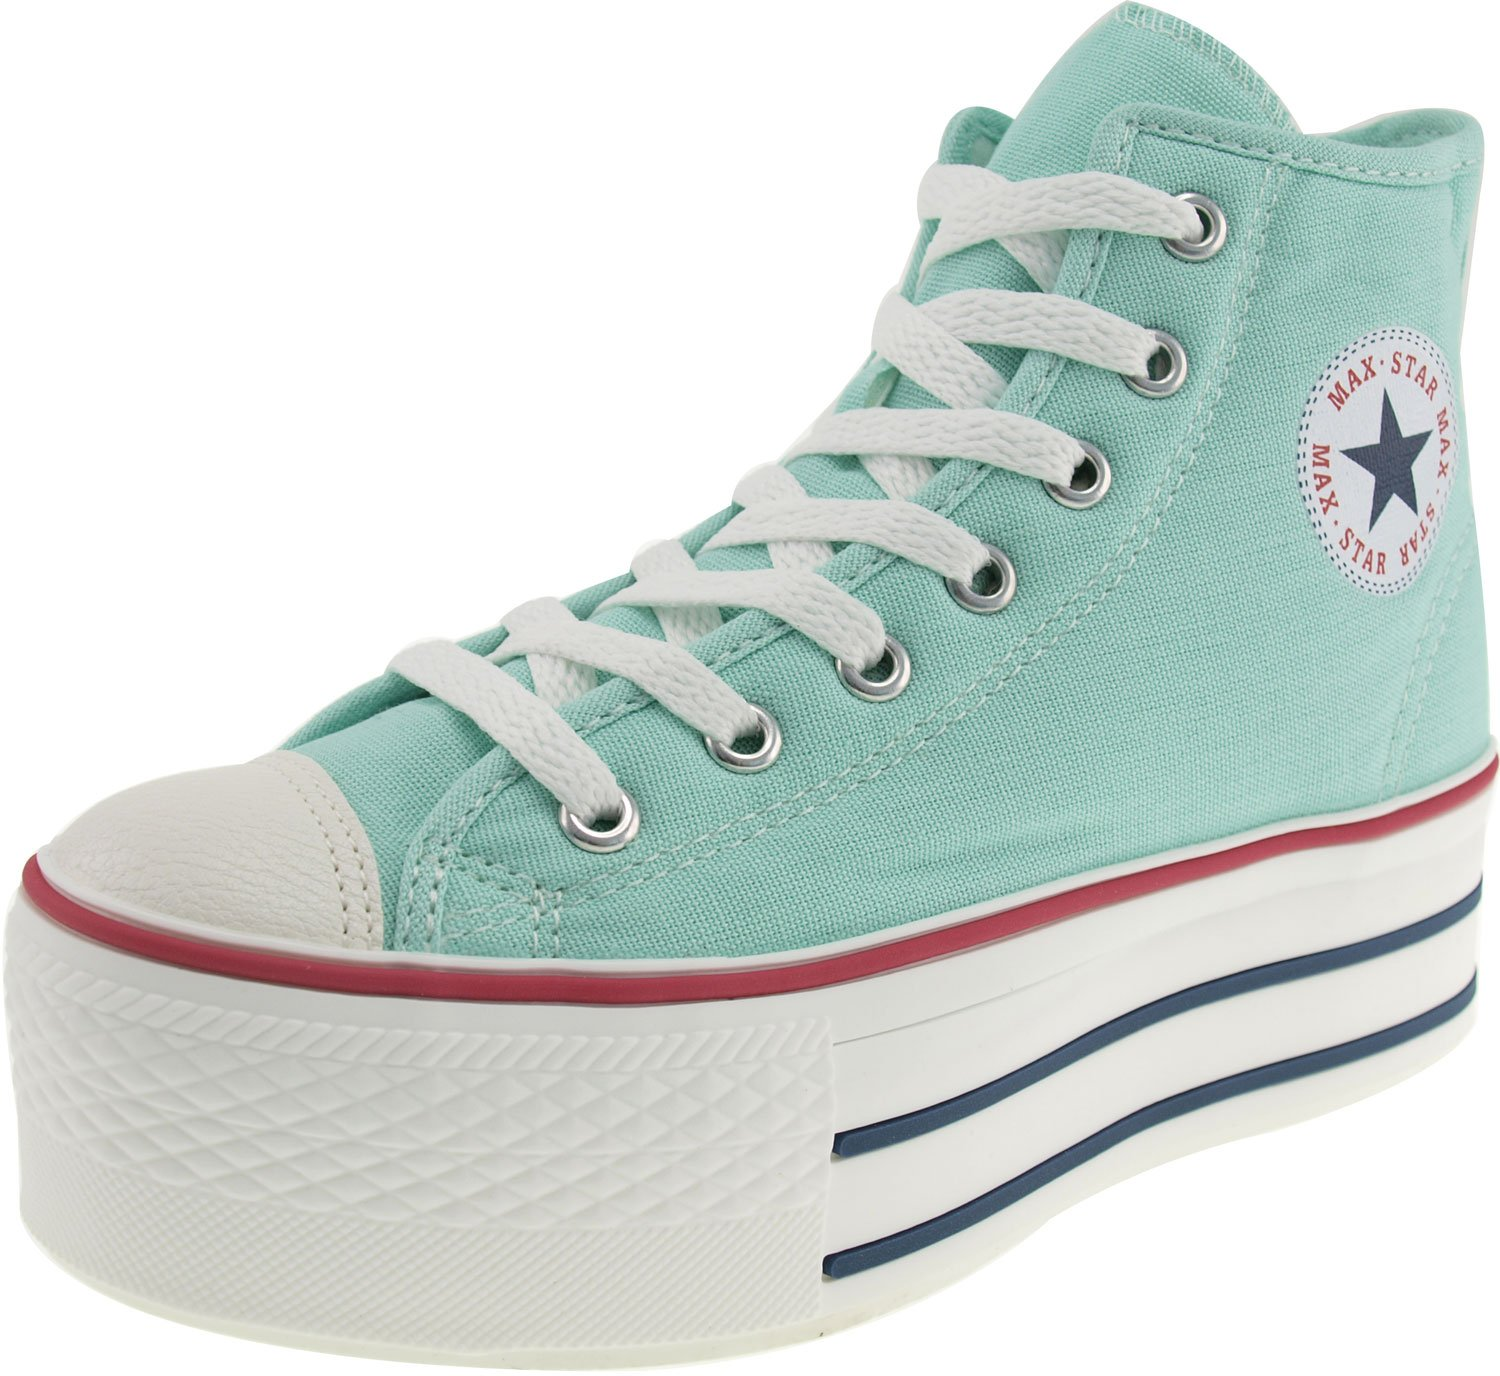 Maxstar Women's C50 7 Holes Zipper Platform Canvas High Top Sneakers B00CHVUQ86 8.5 B(M) US|Mint